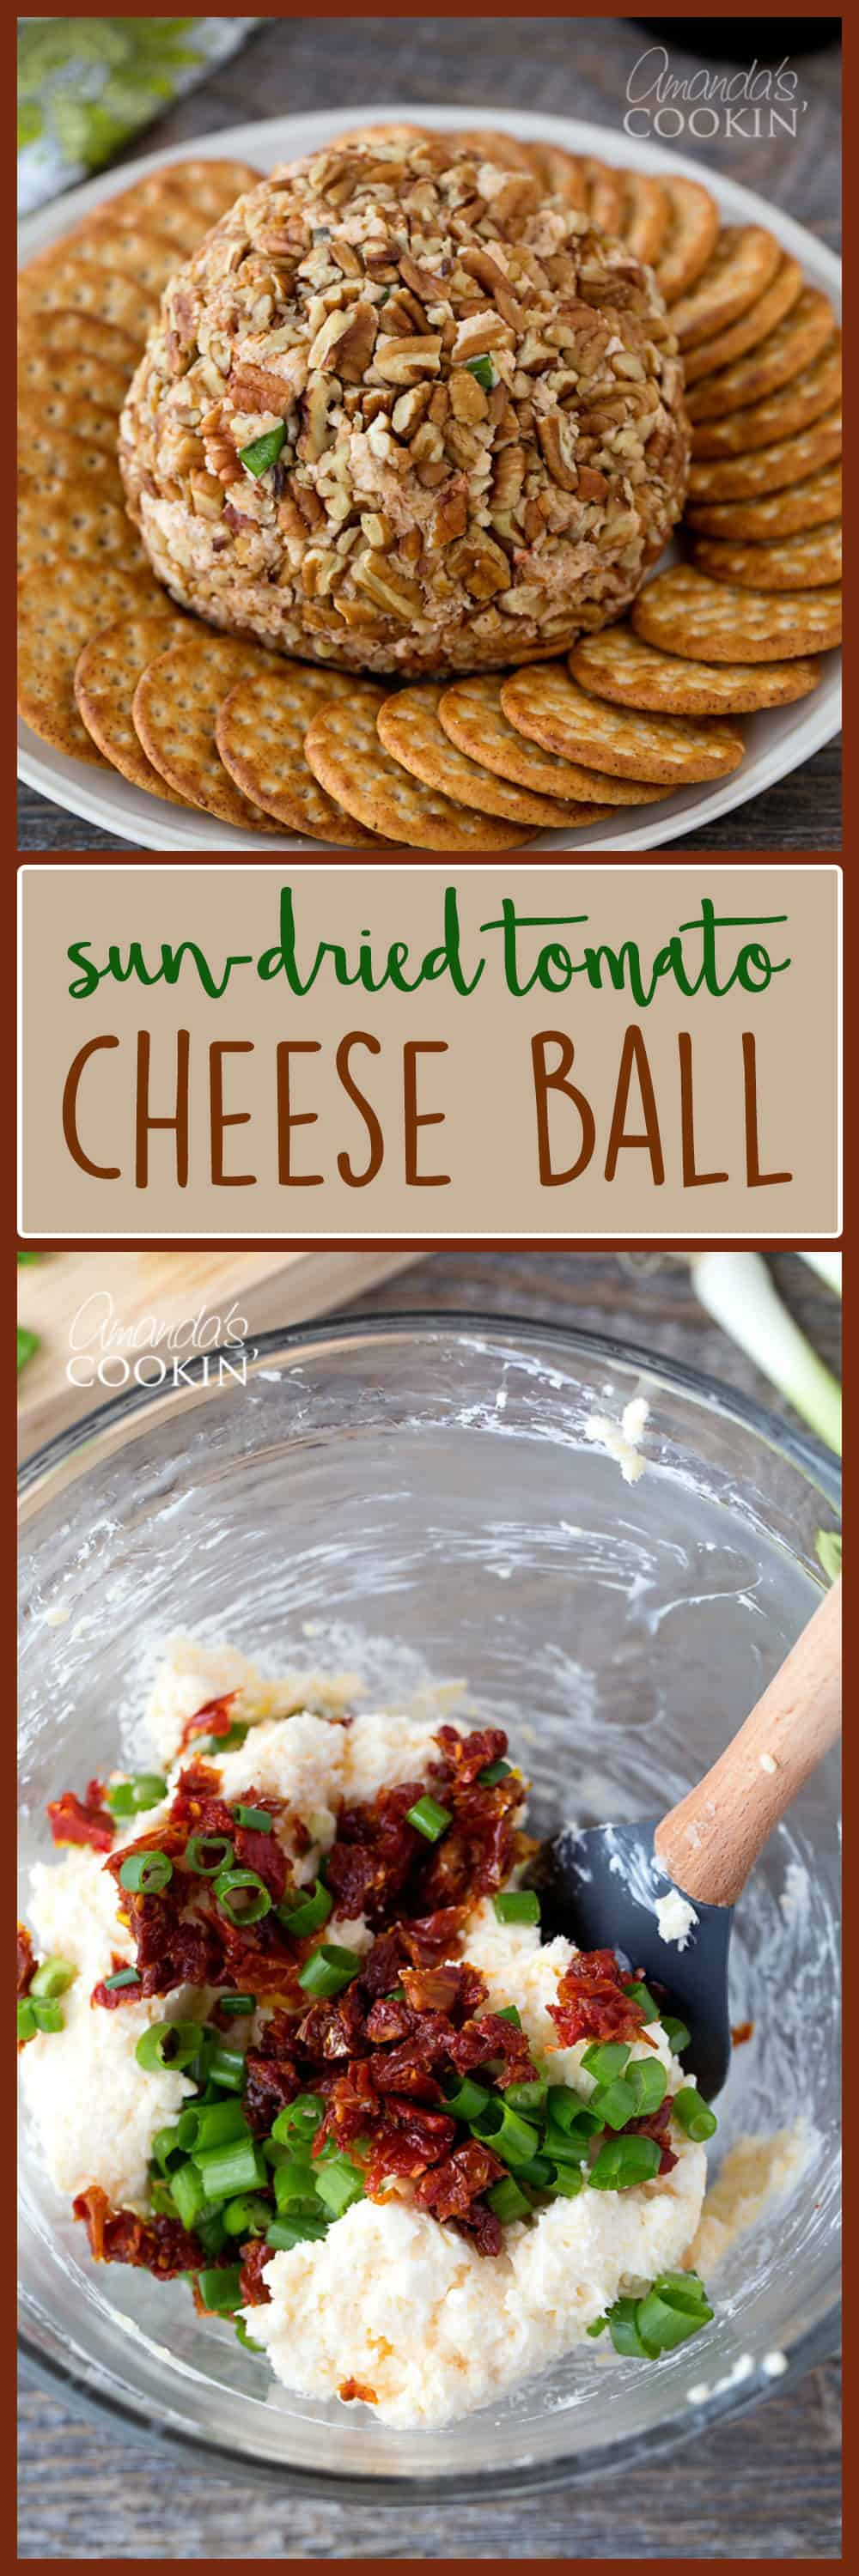 This cheese ball is packed with smoked Gouda flavor and wonderful sun-dried tomatoes! Get ready for a mouth-watering appetizer everyone will love.